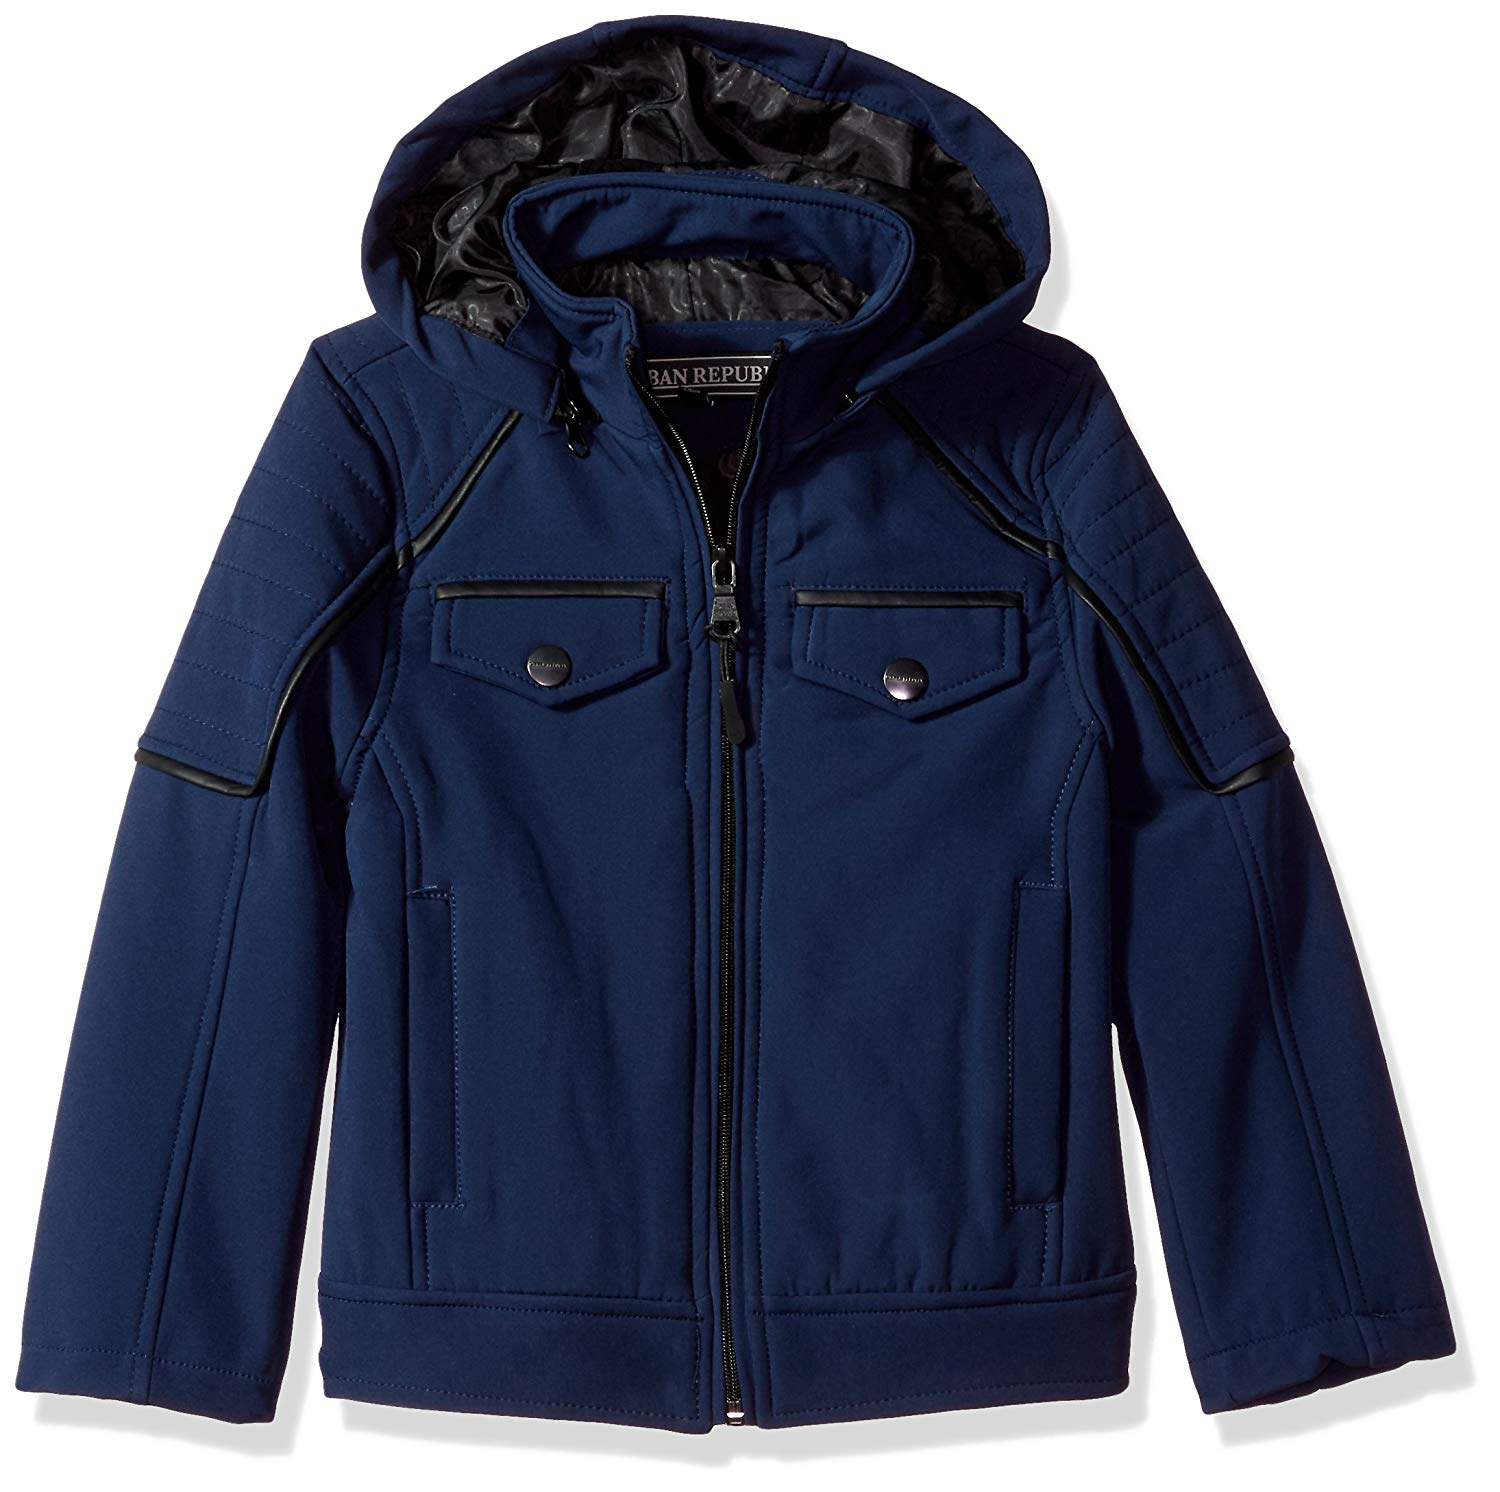 5c4bd777f Cheap Soft Shell Jacket North Face, find Soft Shell Jacket North ...